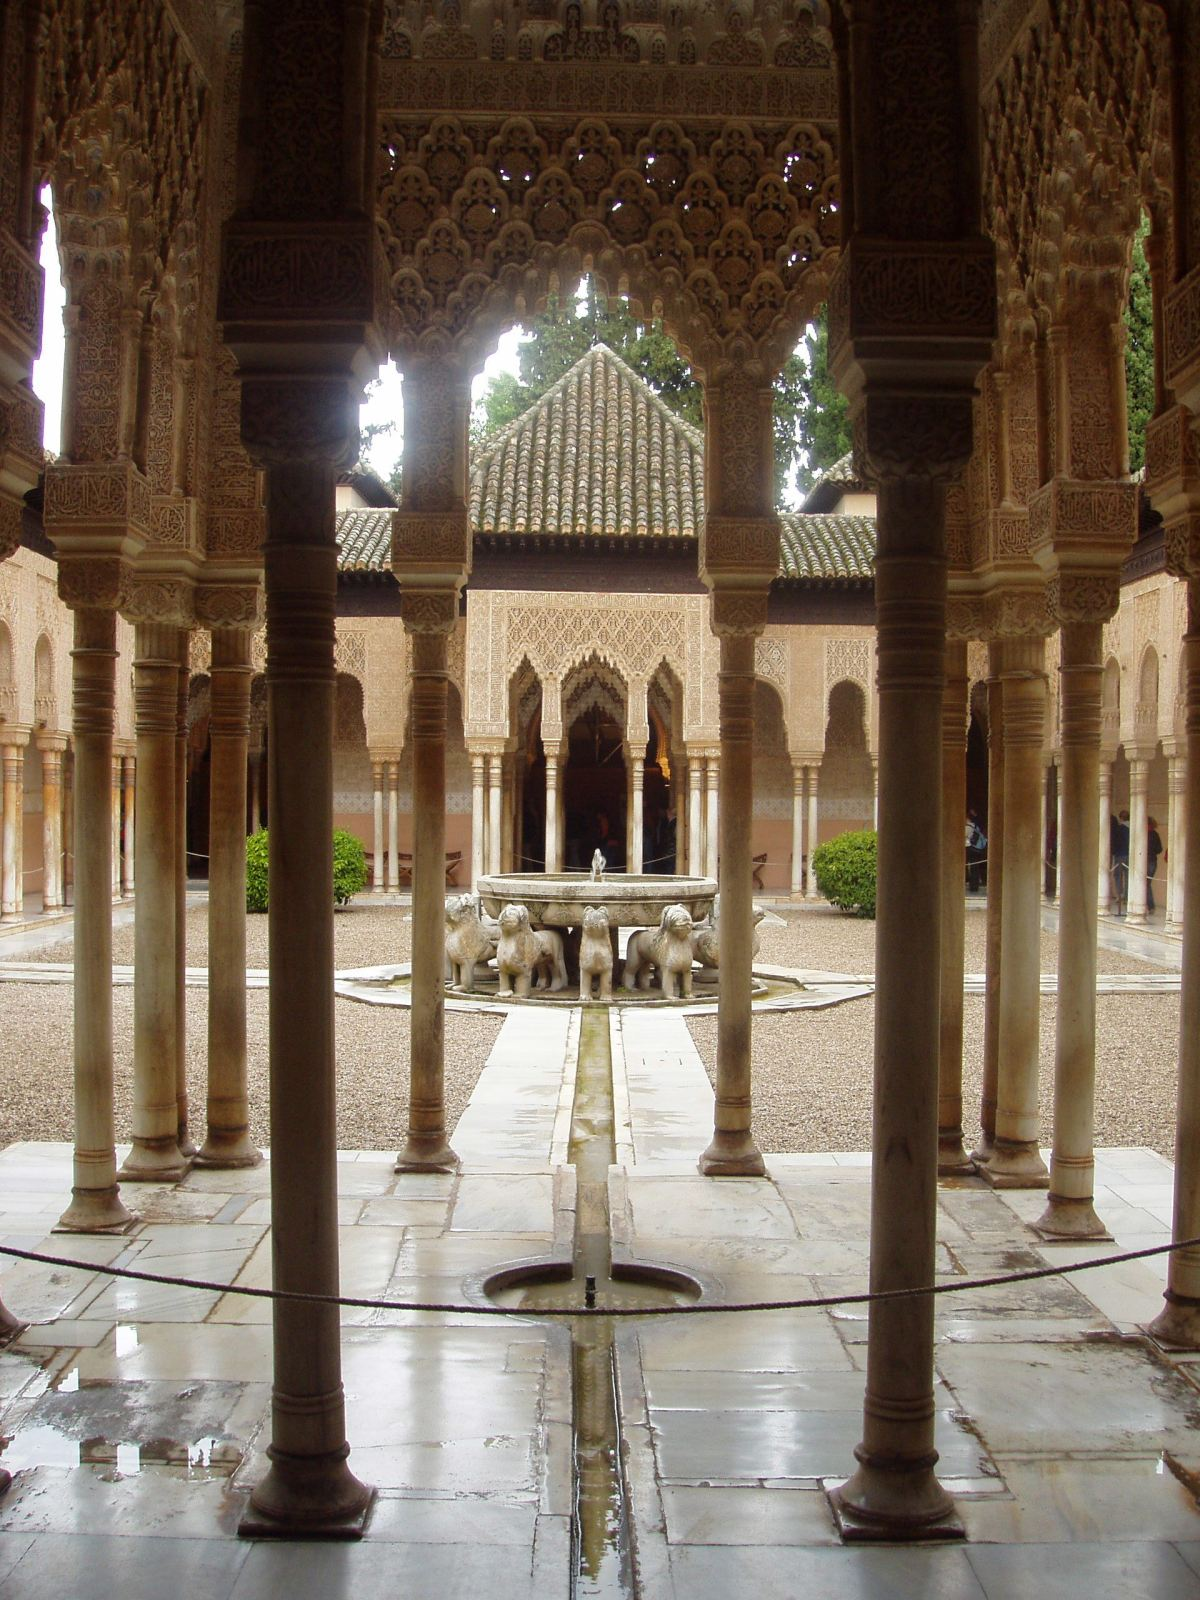 The Alhambra Palace, Granada